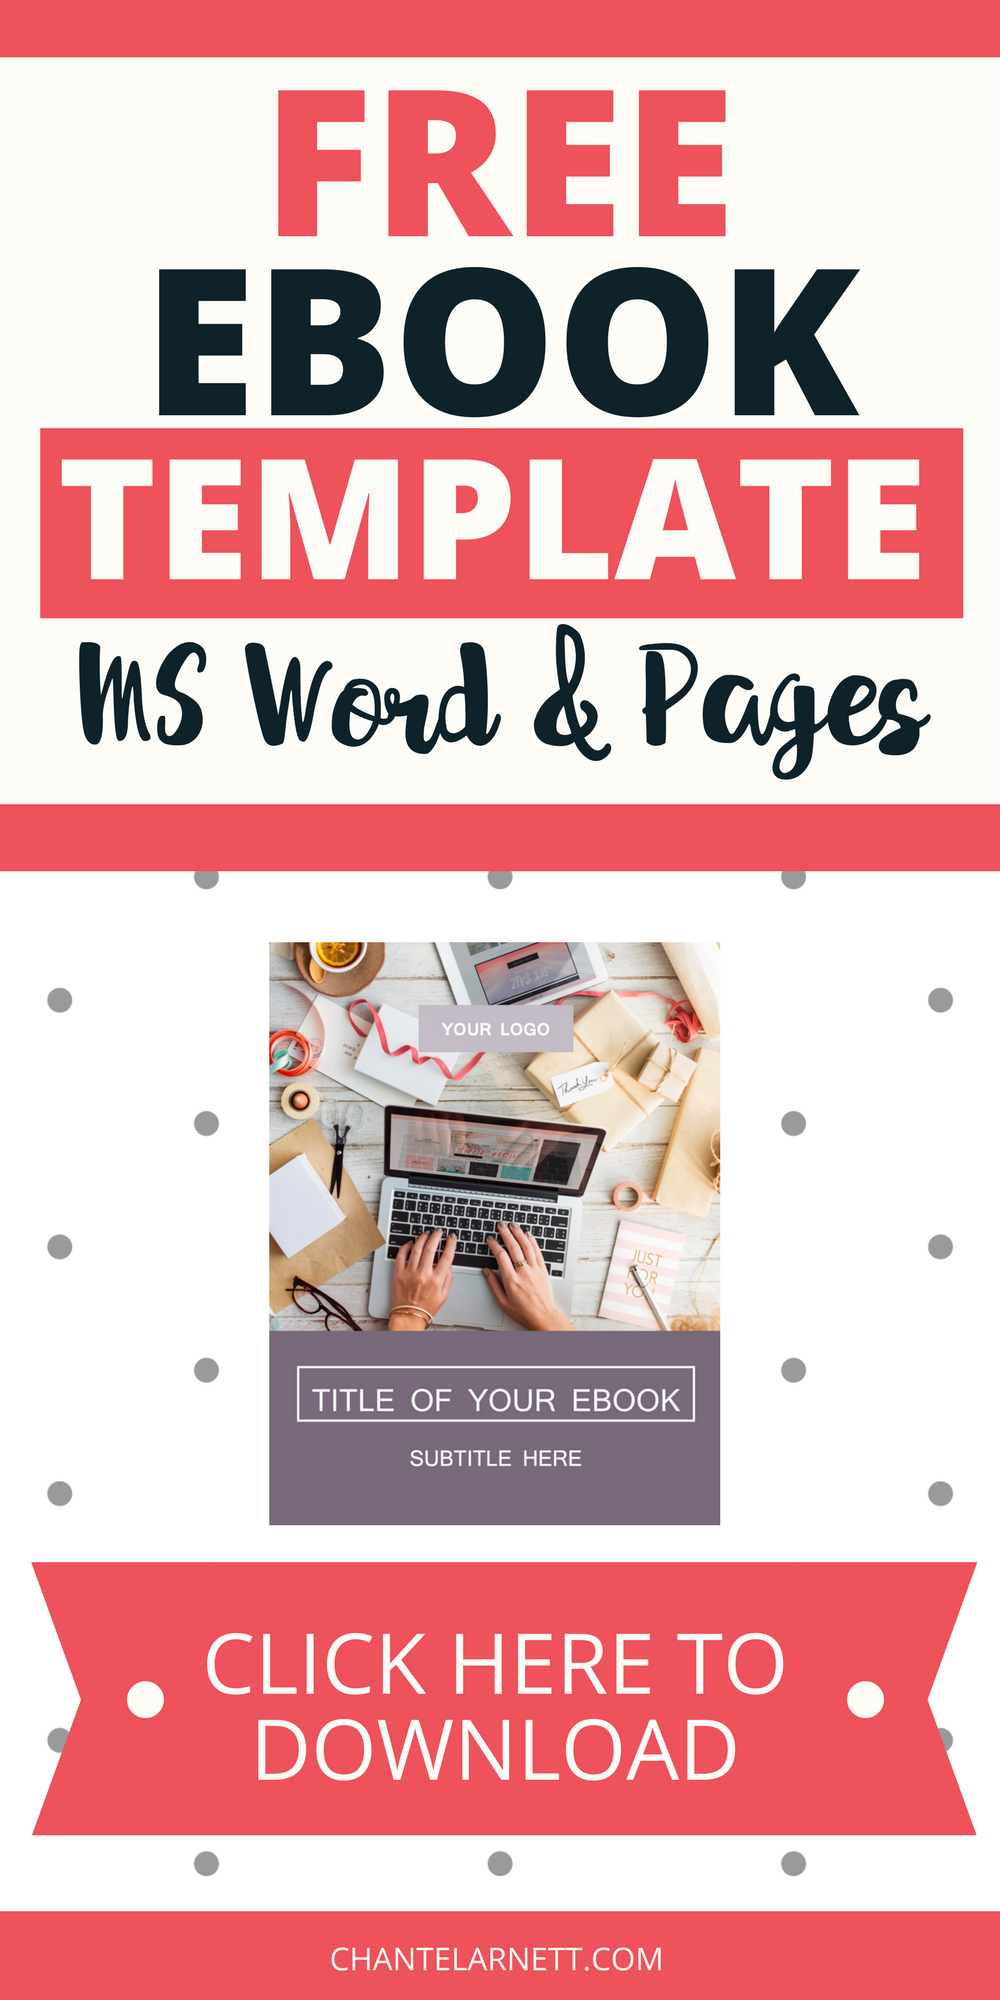 Struggling with your ebook template design download these free struggling with your ebook template design download these free ebook templates for ms word and maxwellsz